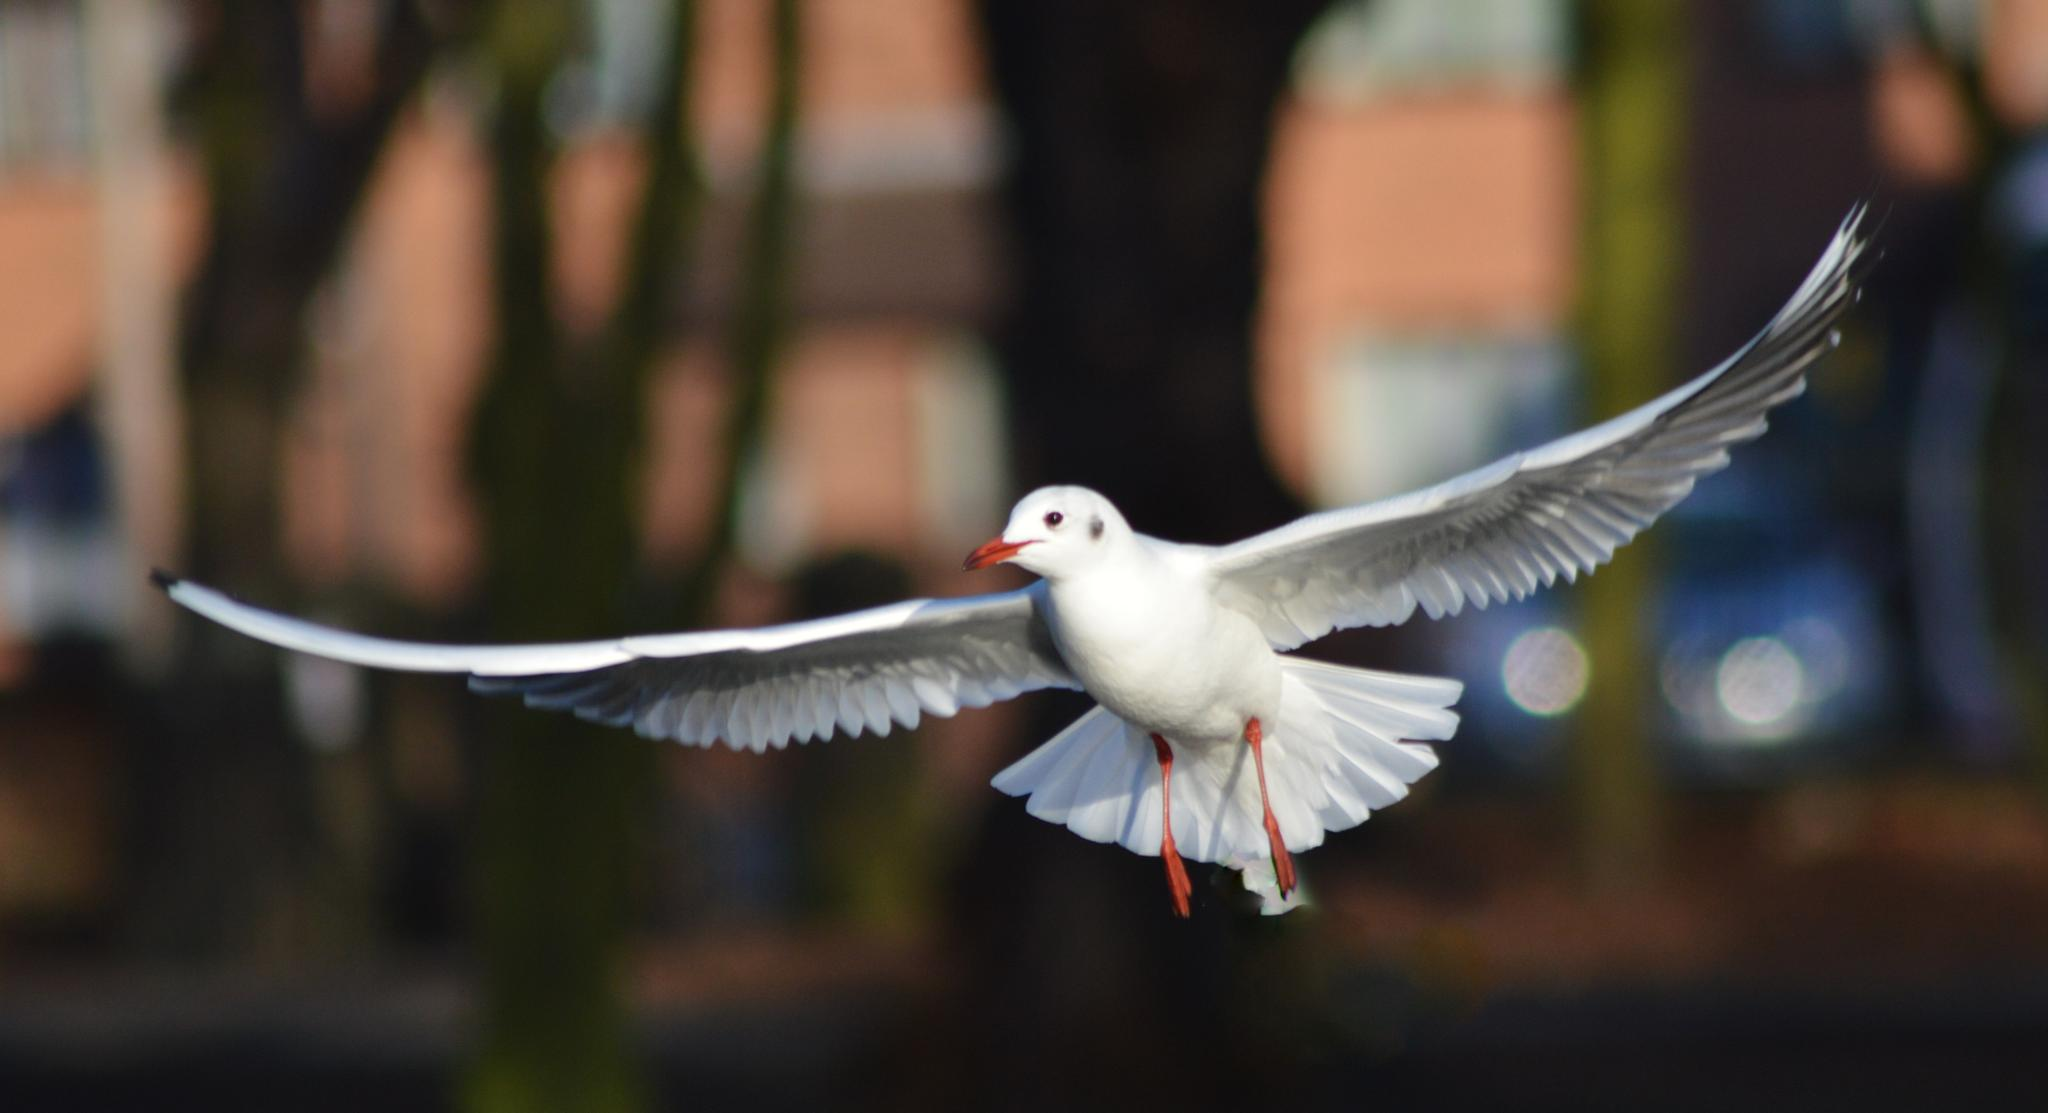 bird in flight by cameraman